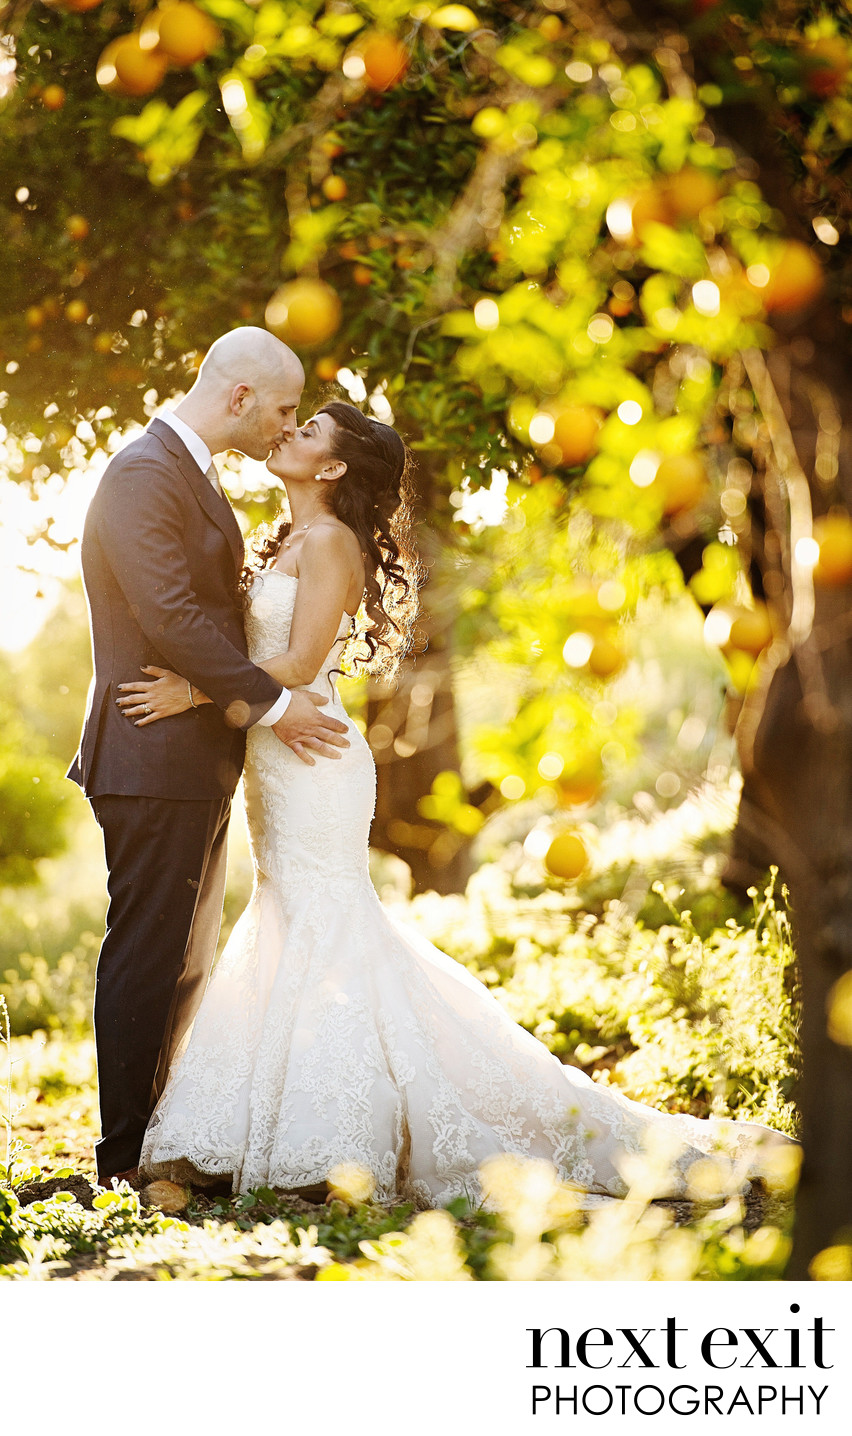 A wedding kiss in the Citrus Orchard - Los Angeles Wedding, Mitzvah & Portrait Photographer - Next Exit Photography